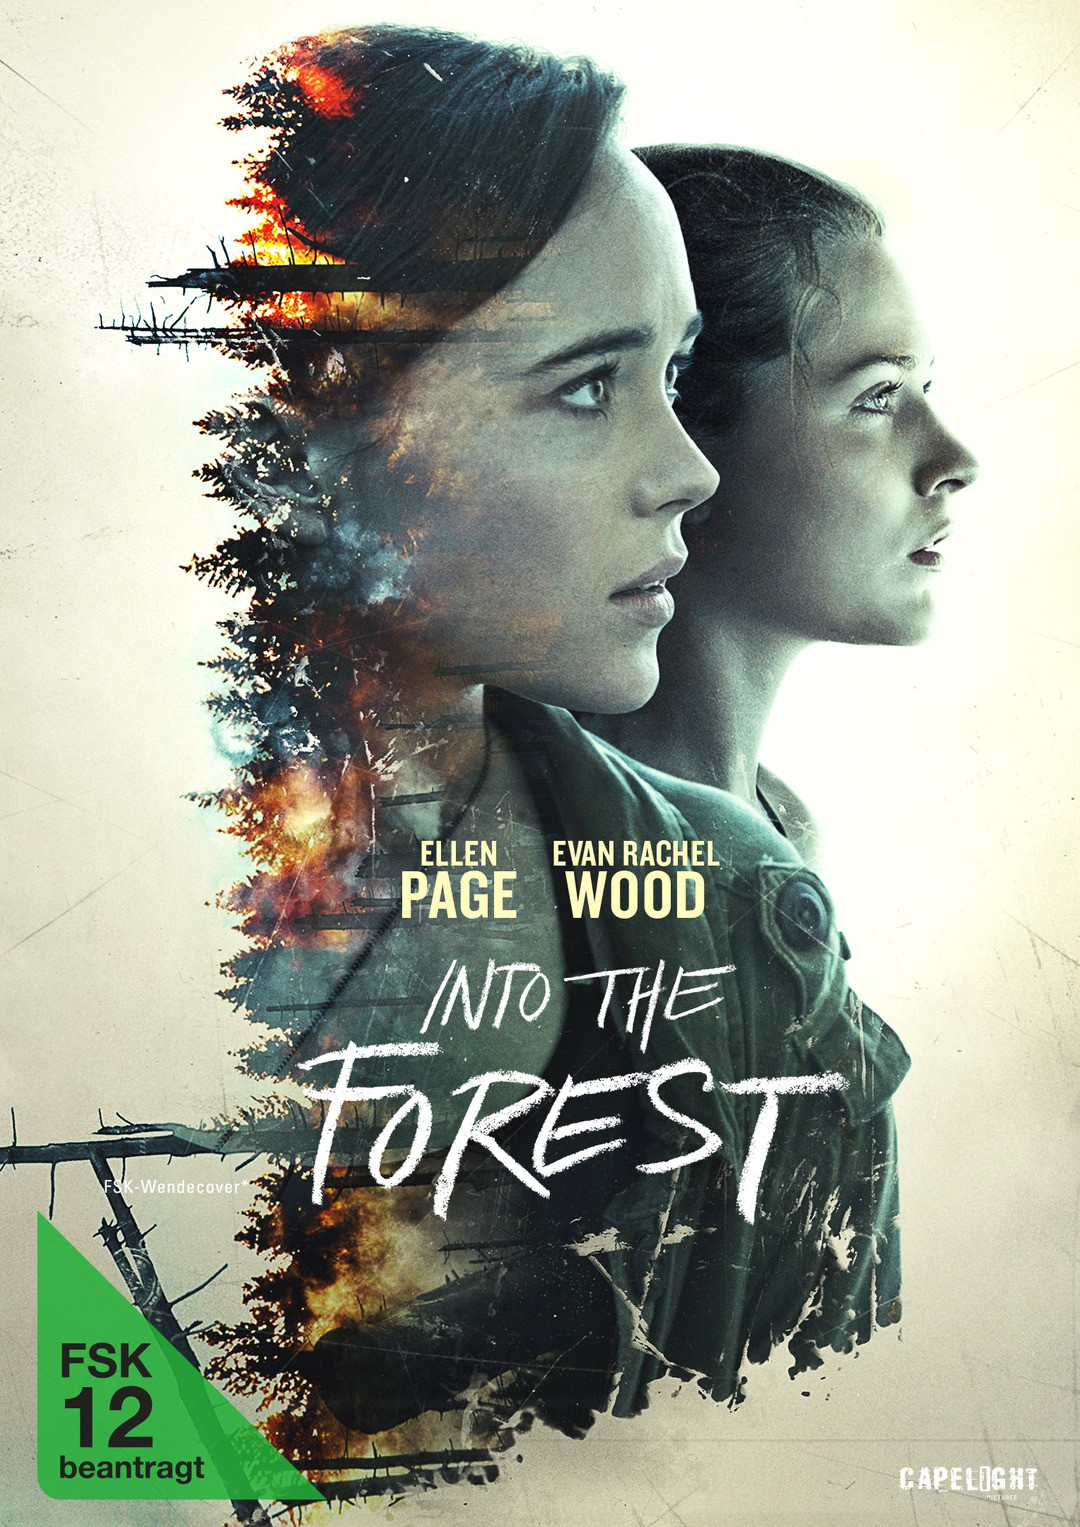 Into The Forest Trailer - Bild 1 von 4